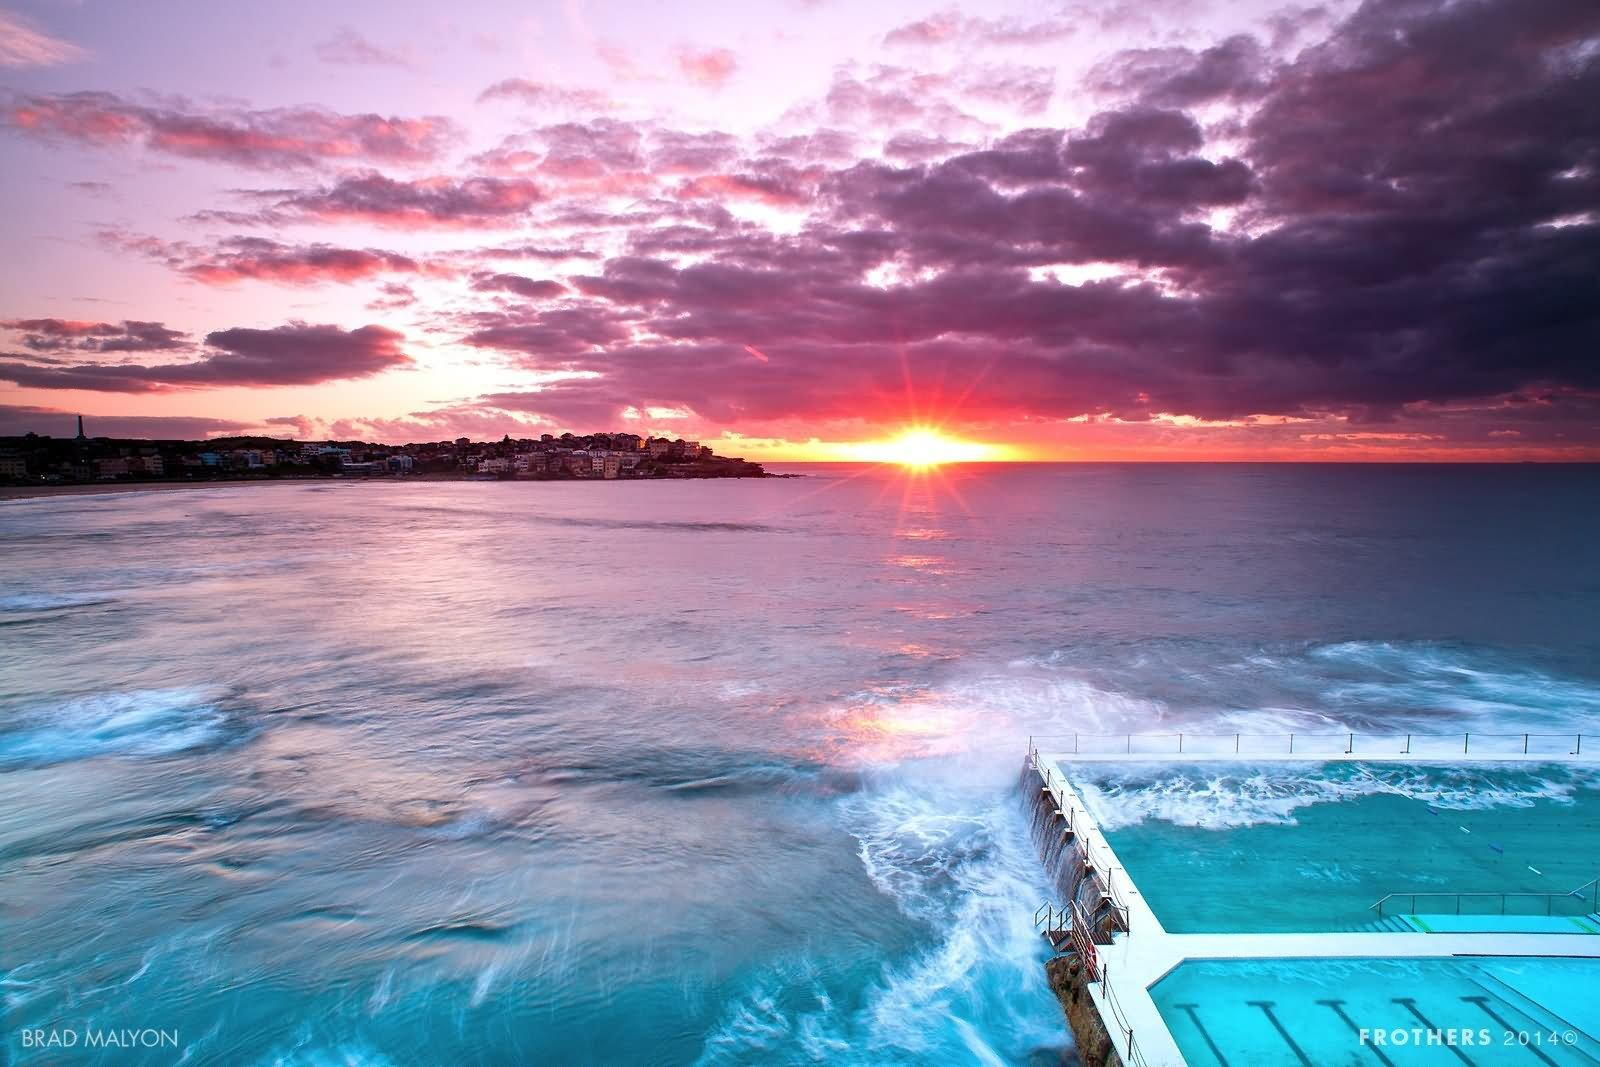 30 Very Beautiful Bondi Beach, Sydney Pictures And Photos